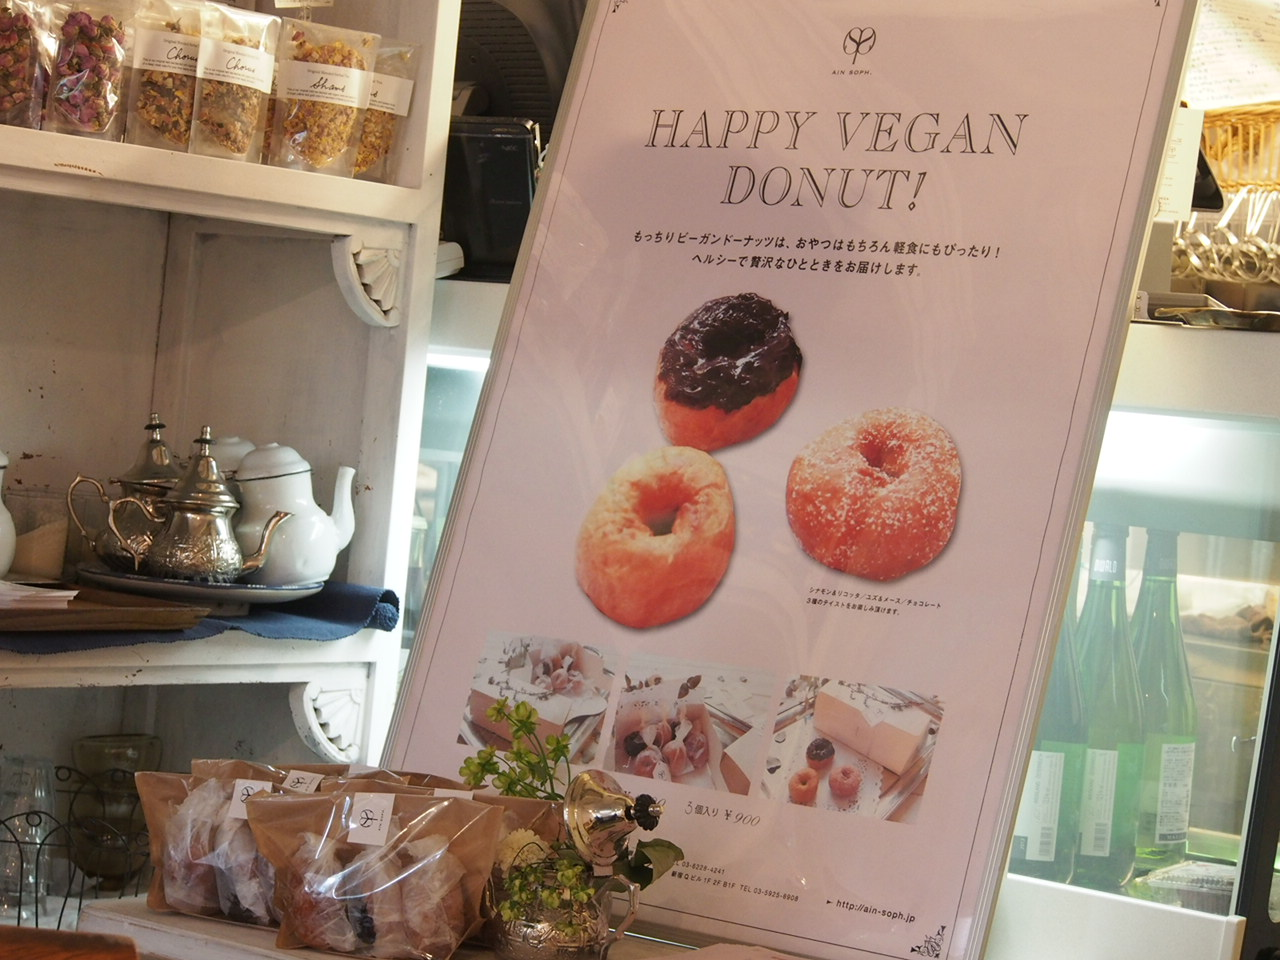 Ain Soph Journey Vegan Donuts